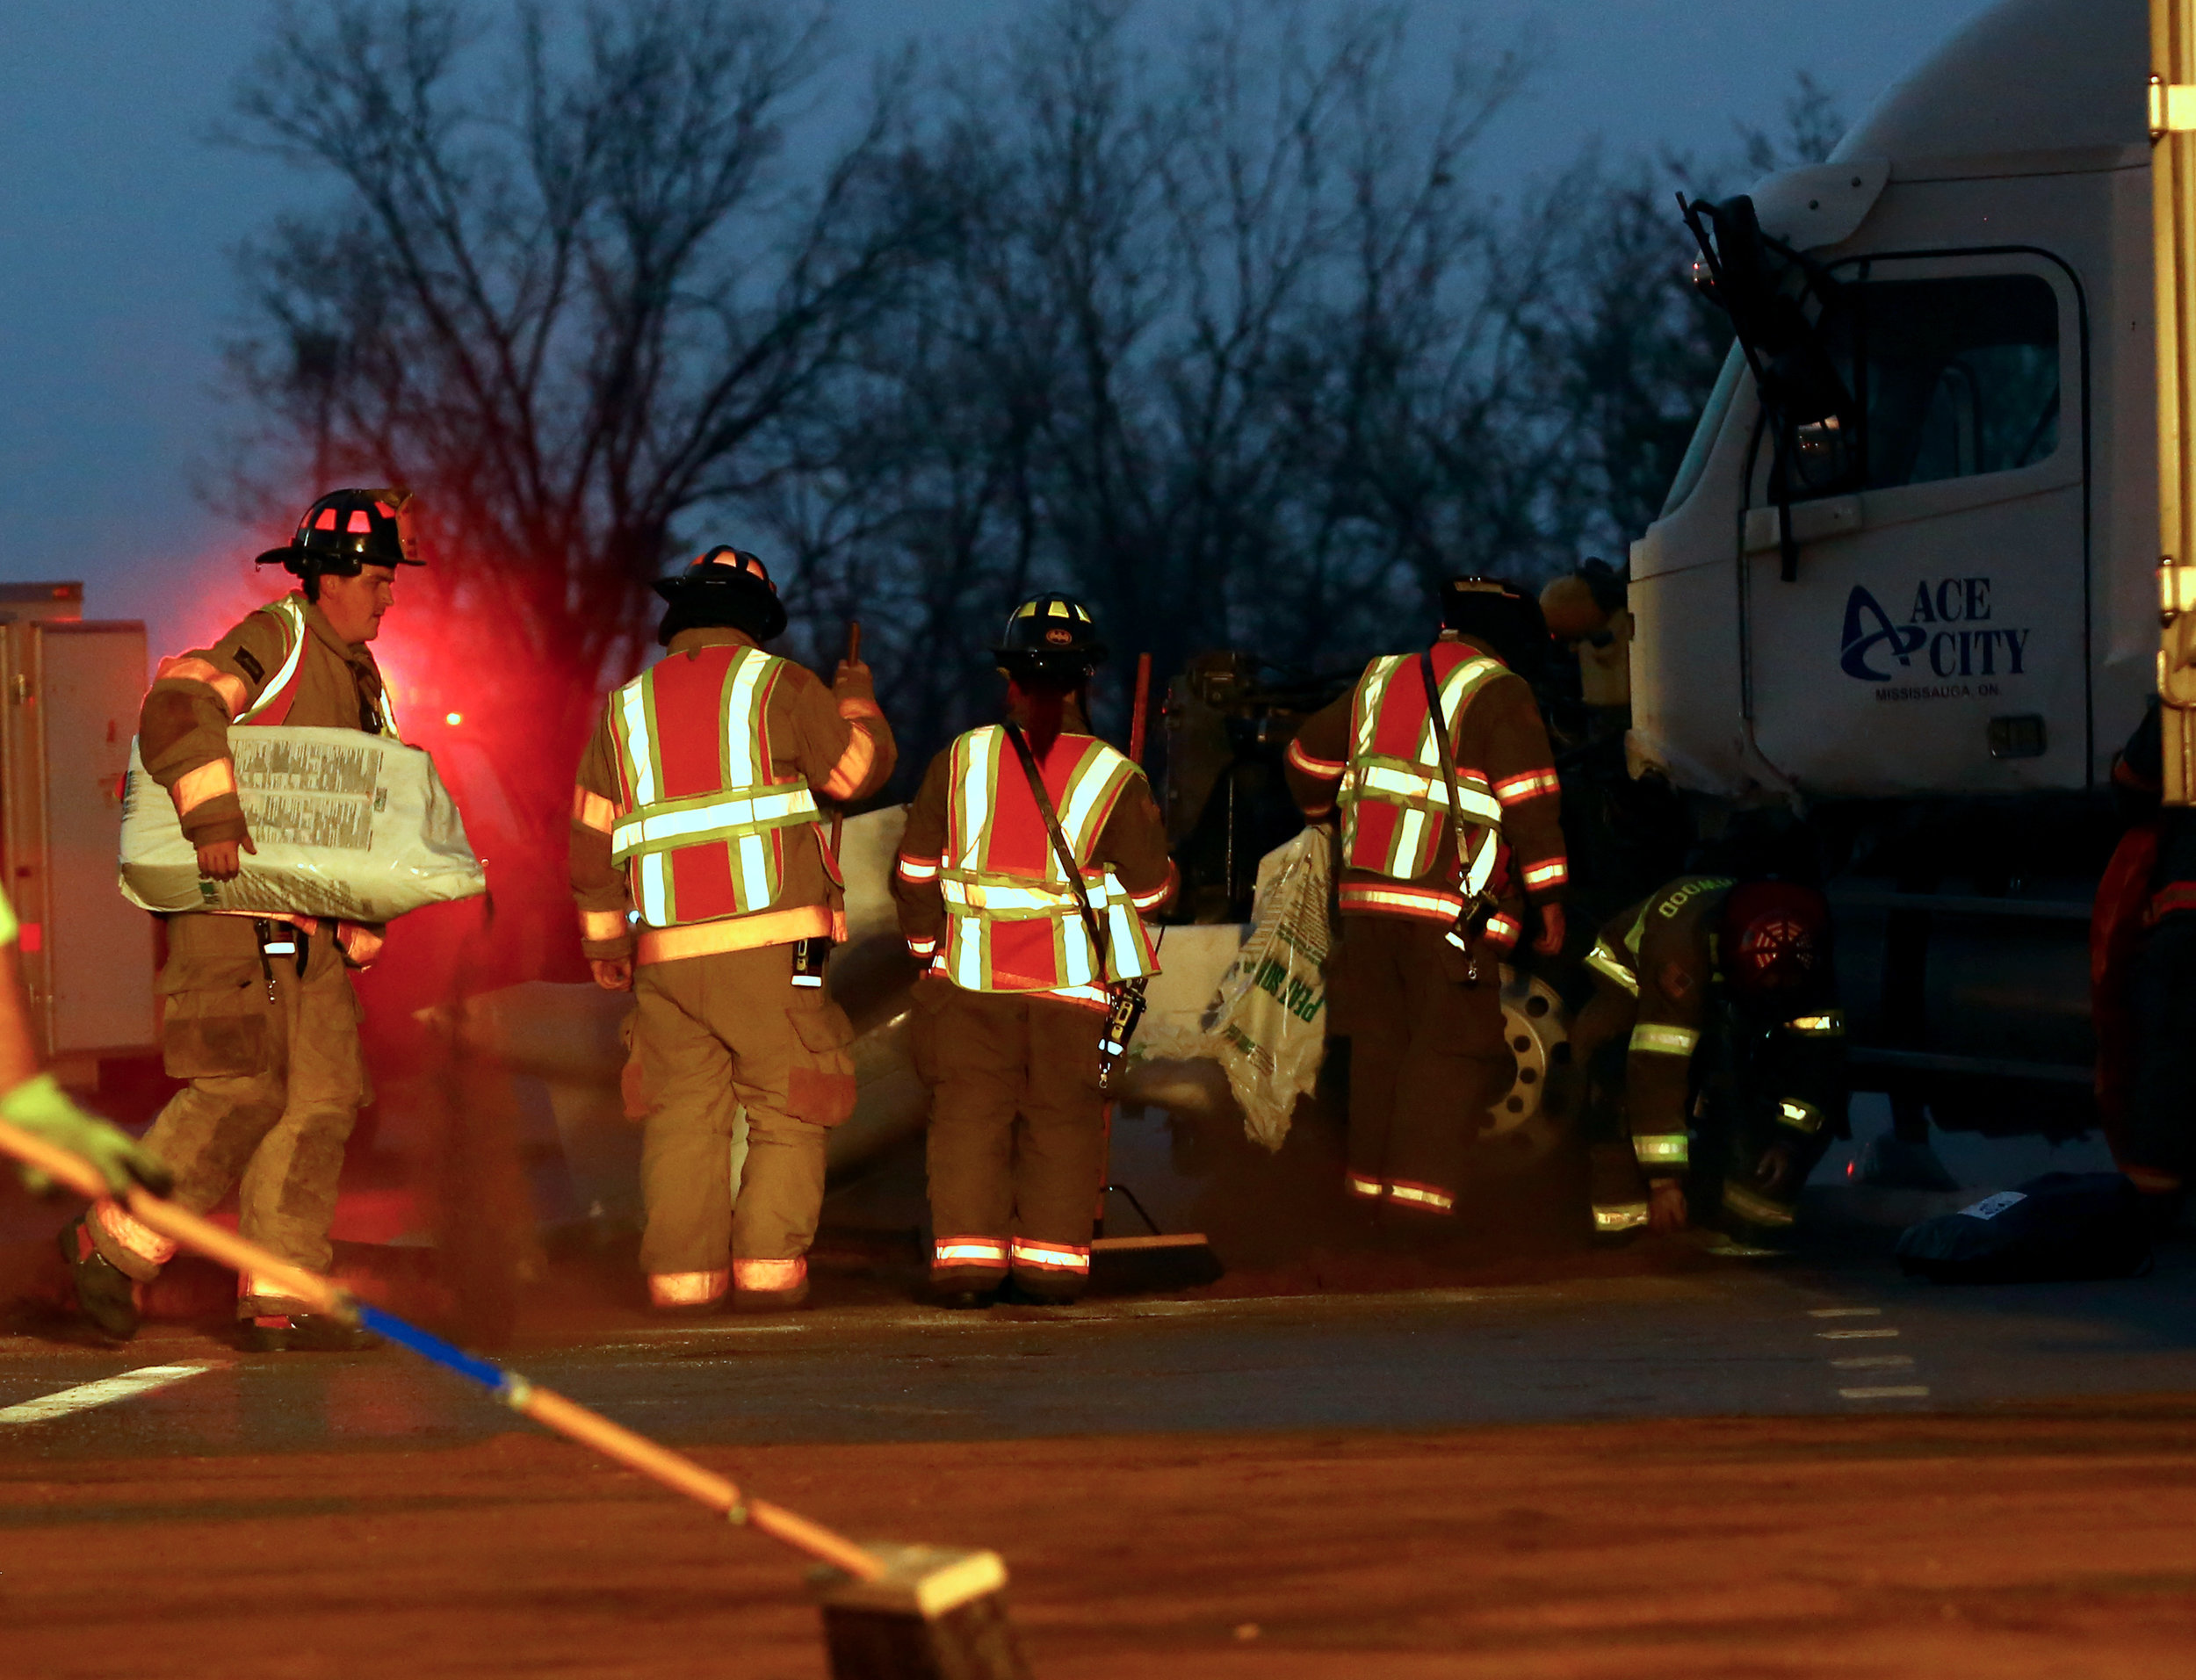 Members of Rossford Fire and Rescue work on spreading absorbents on the diesel leaking from a jack-knifed semi on I-75 Northbound in Northwood near the Wales Rd. entrance ramp on Tuesday, Nov. 8, 2016.